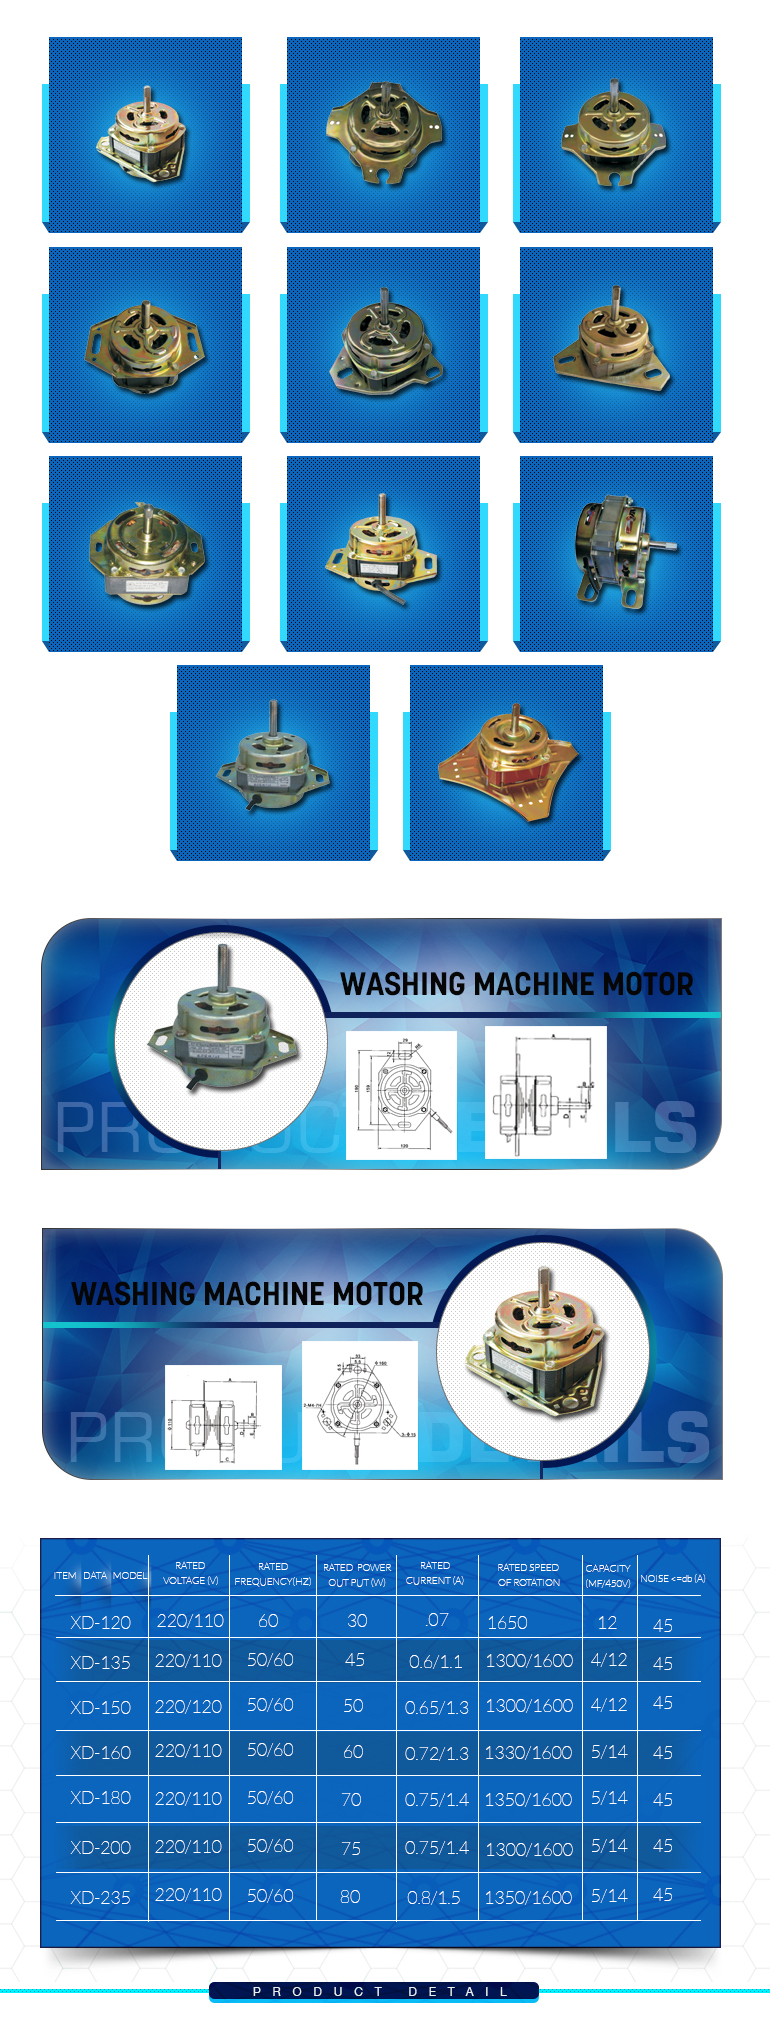 SHARP MODEL washing machine motor TOSHIBA 135W